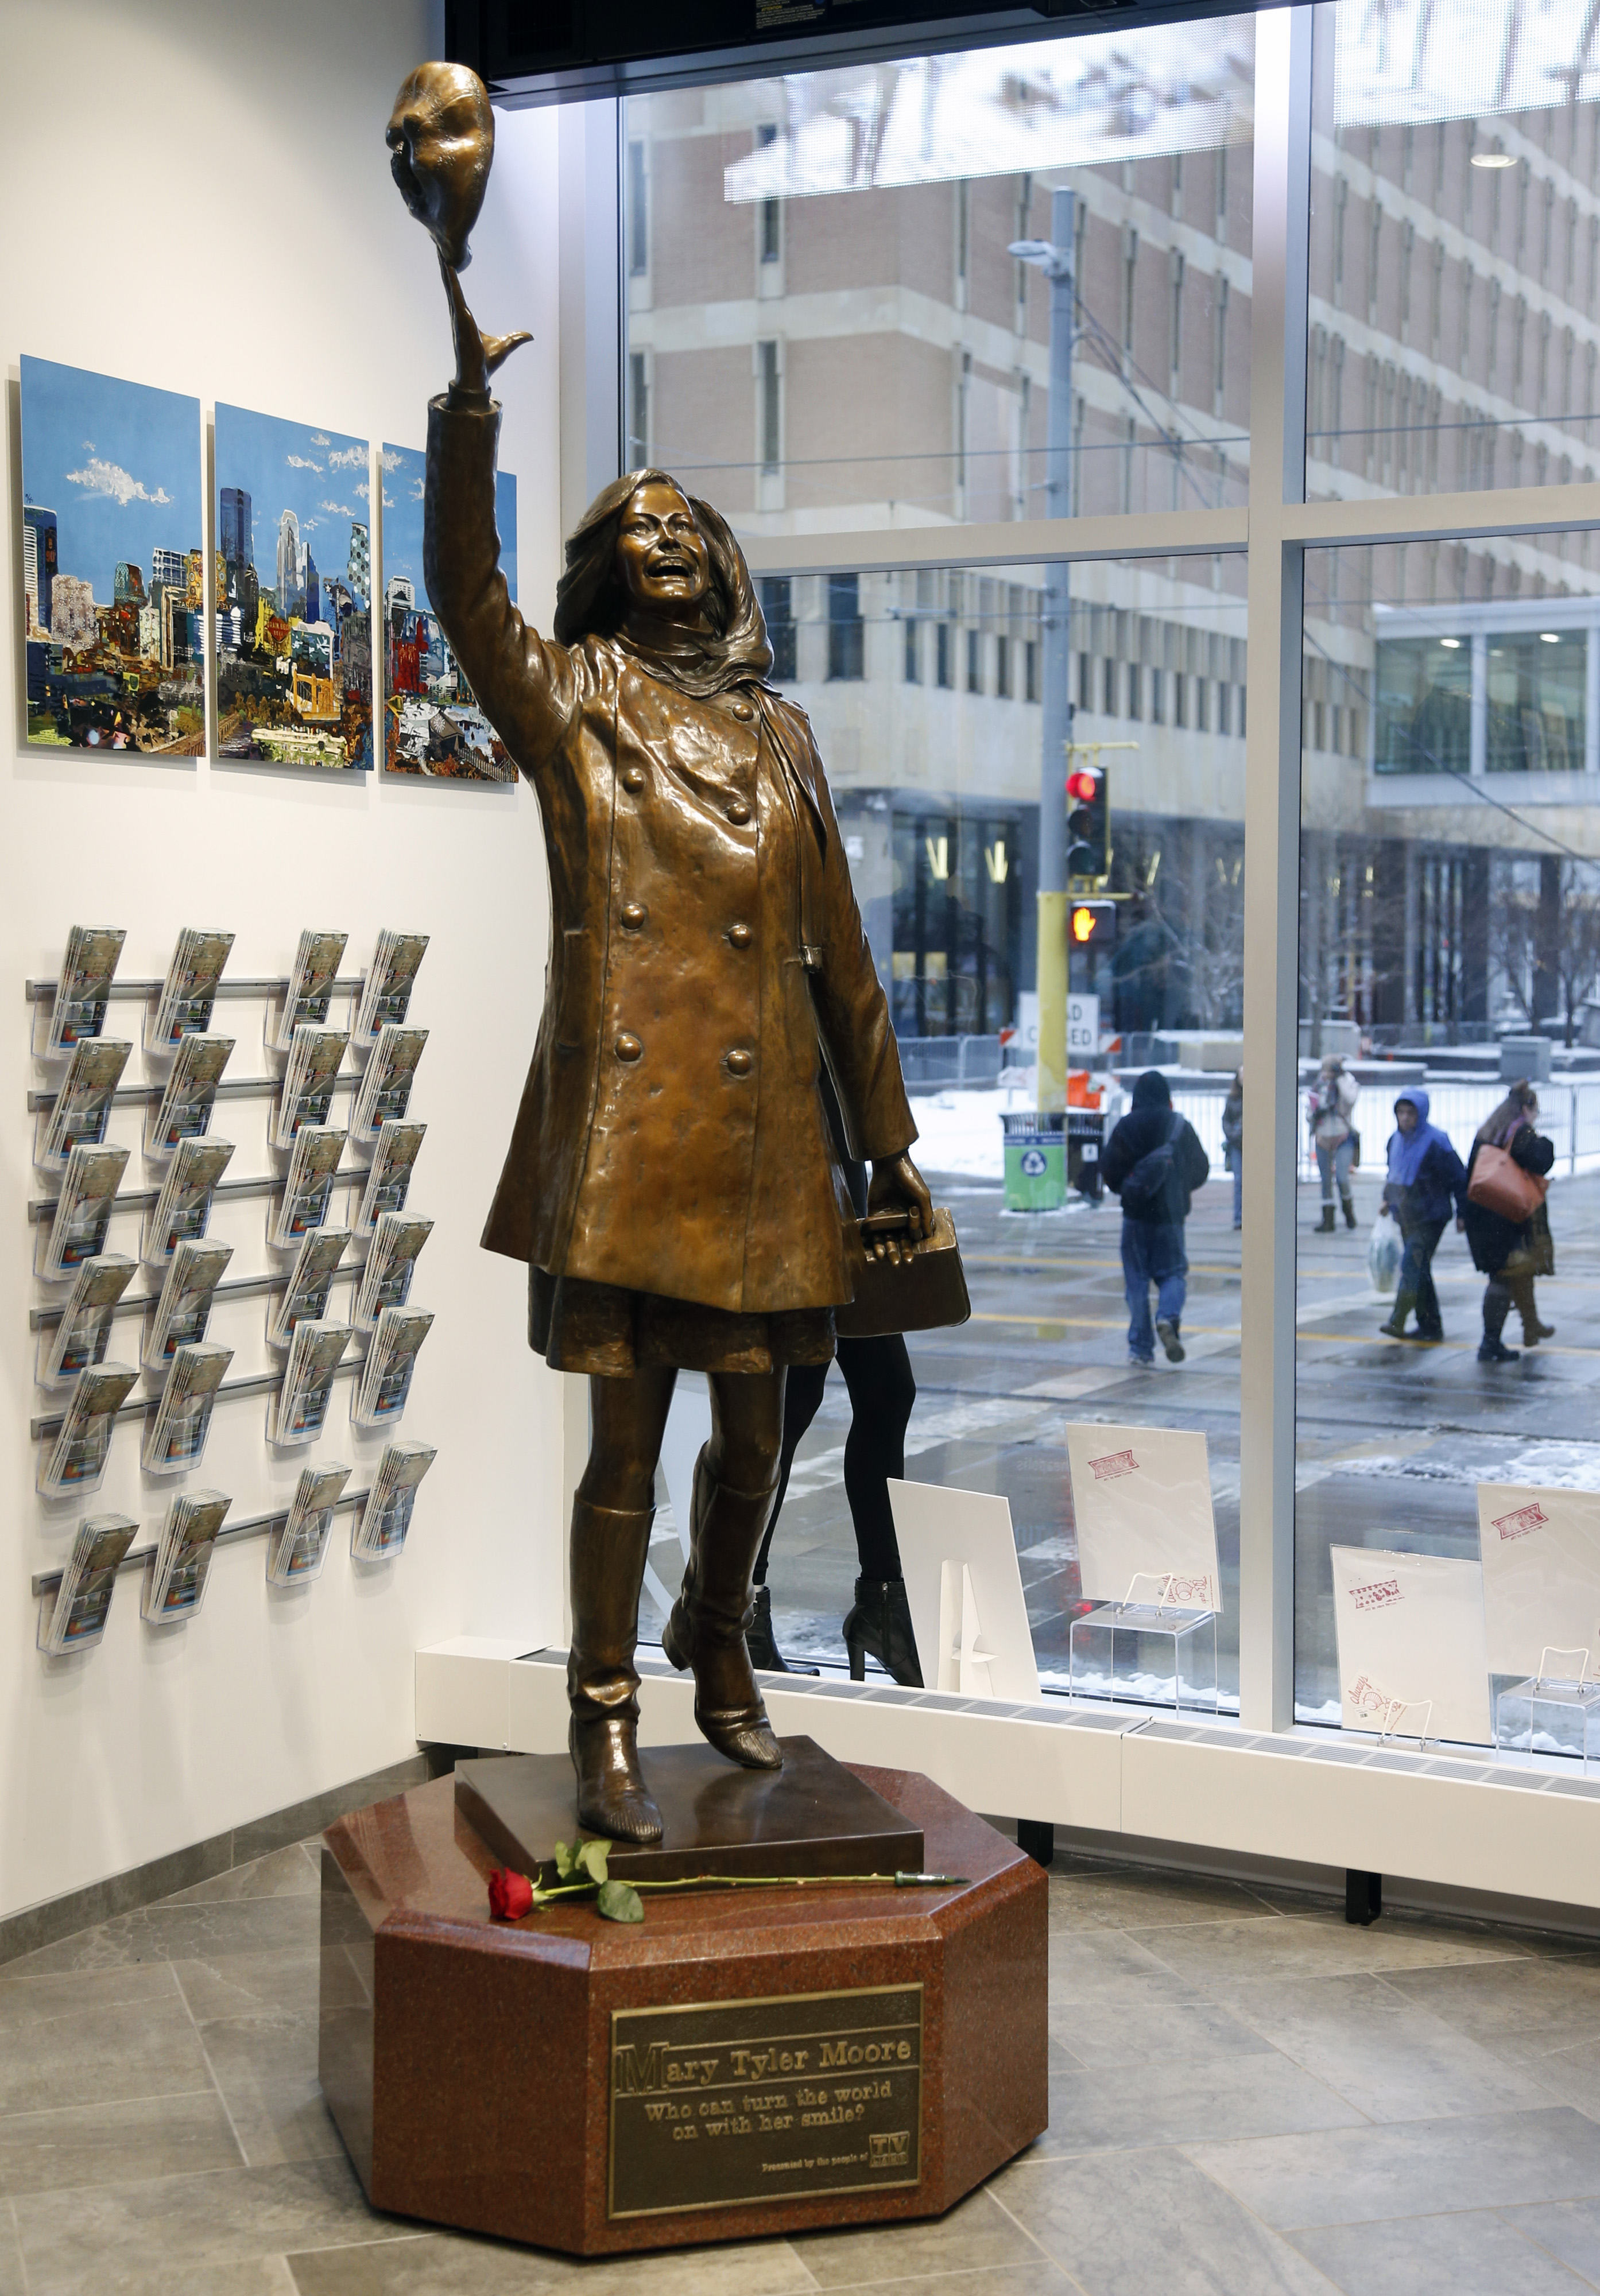 Life-size bronze statue of Mary Tyler Moore at the Minneapolis Visitor Center. (AP Photo/Jim Mone)